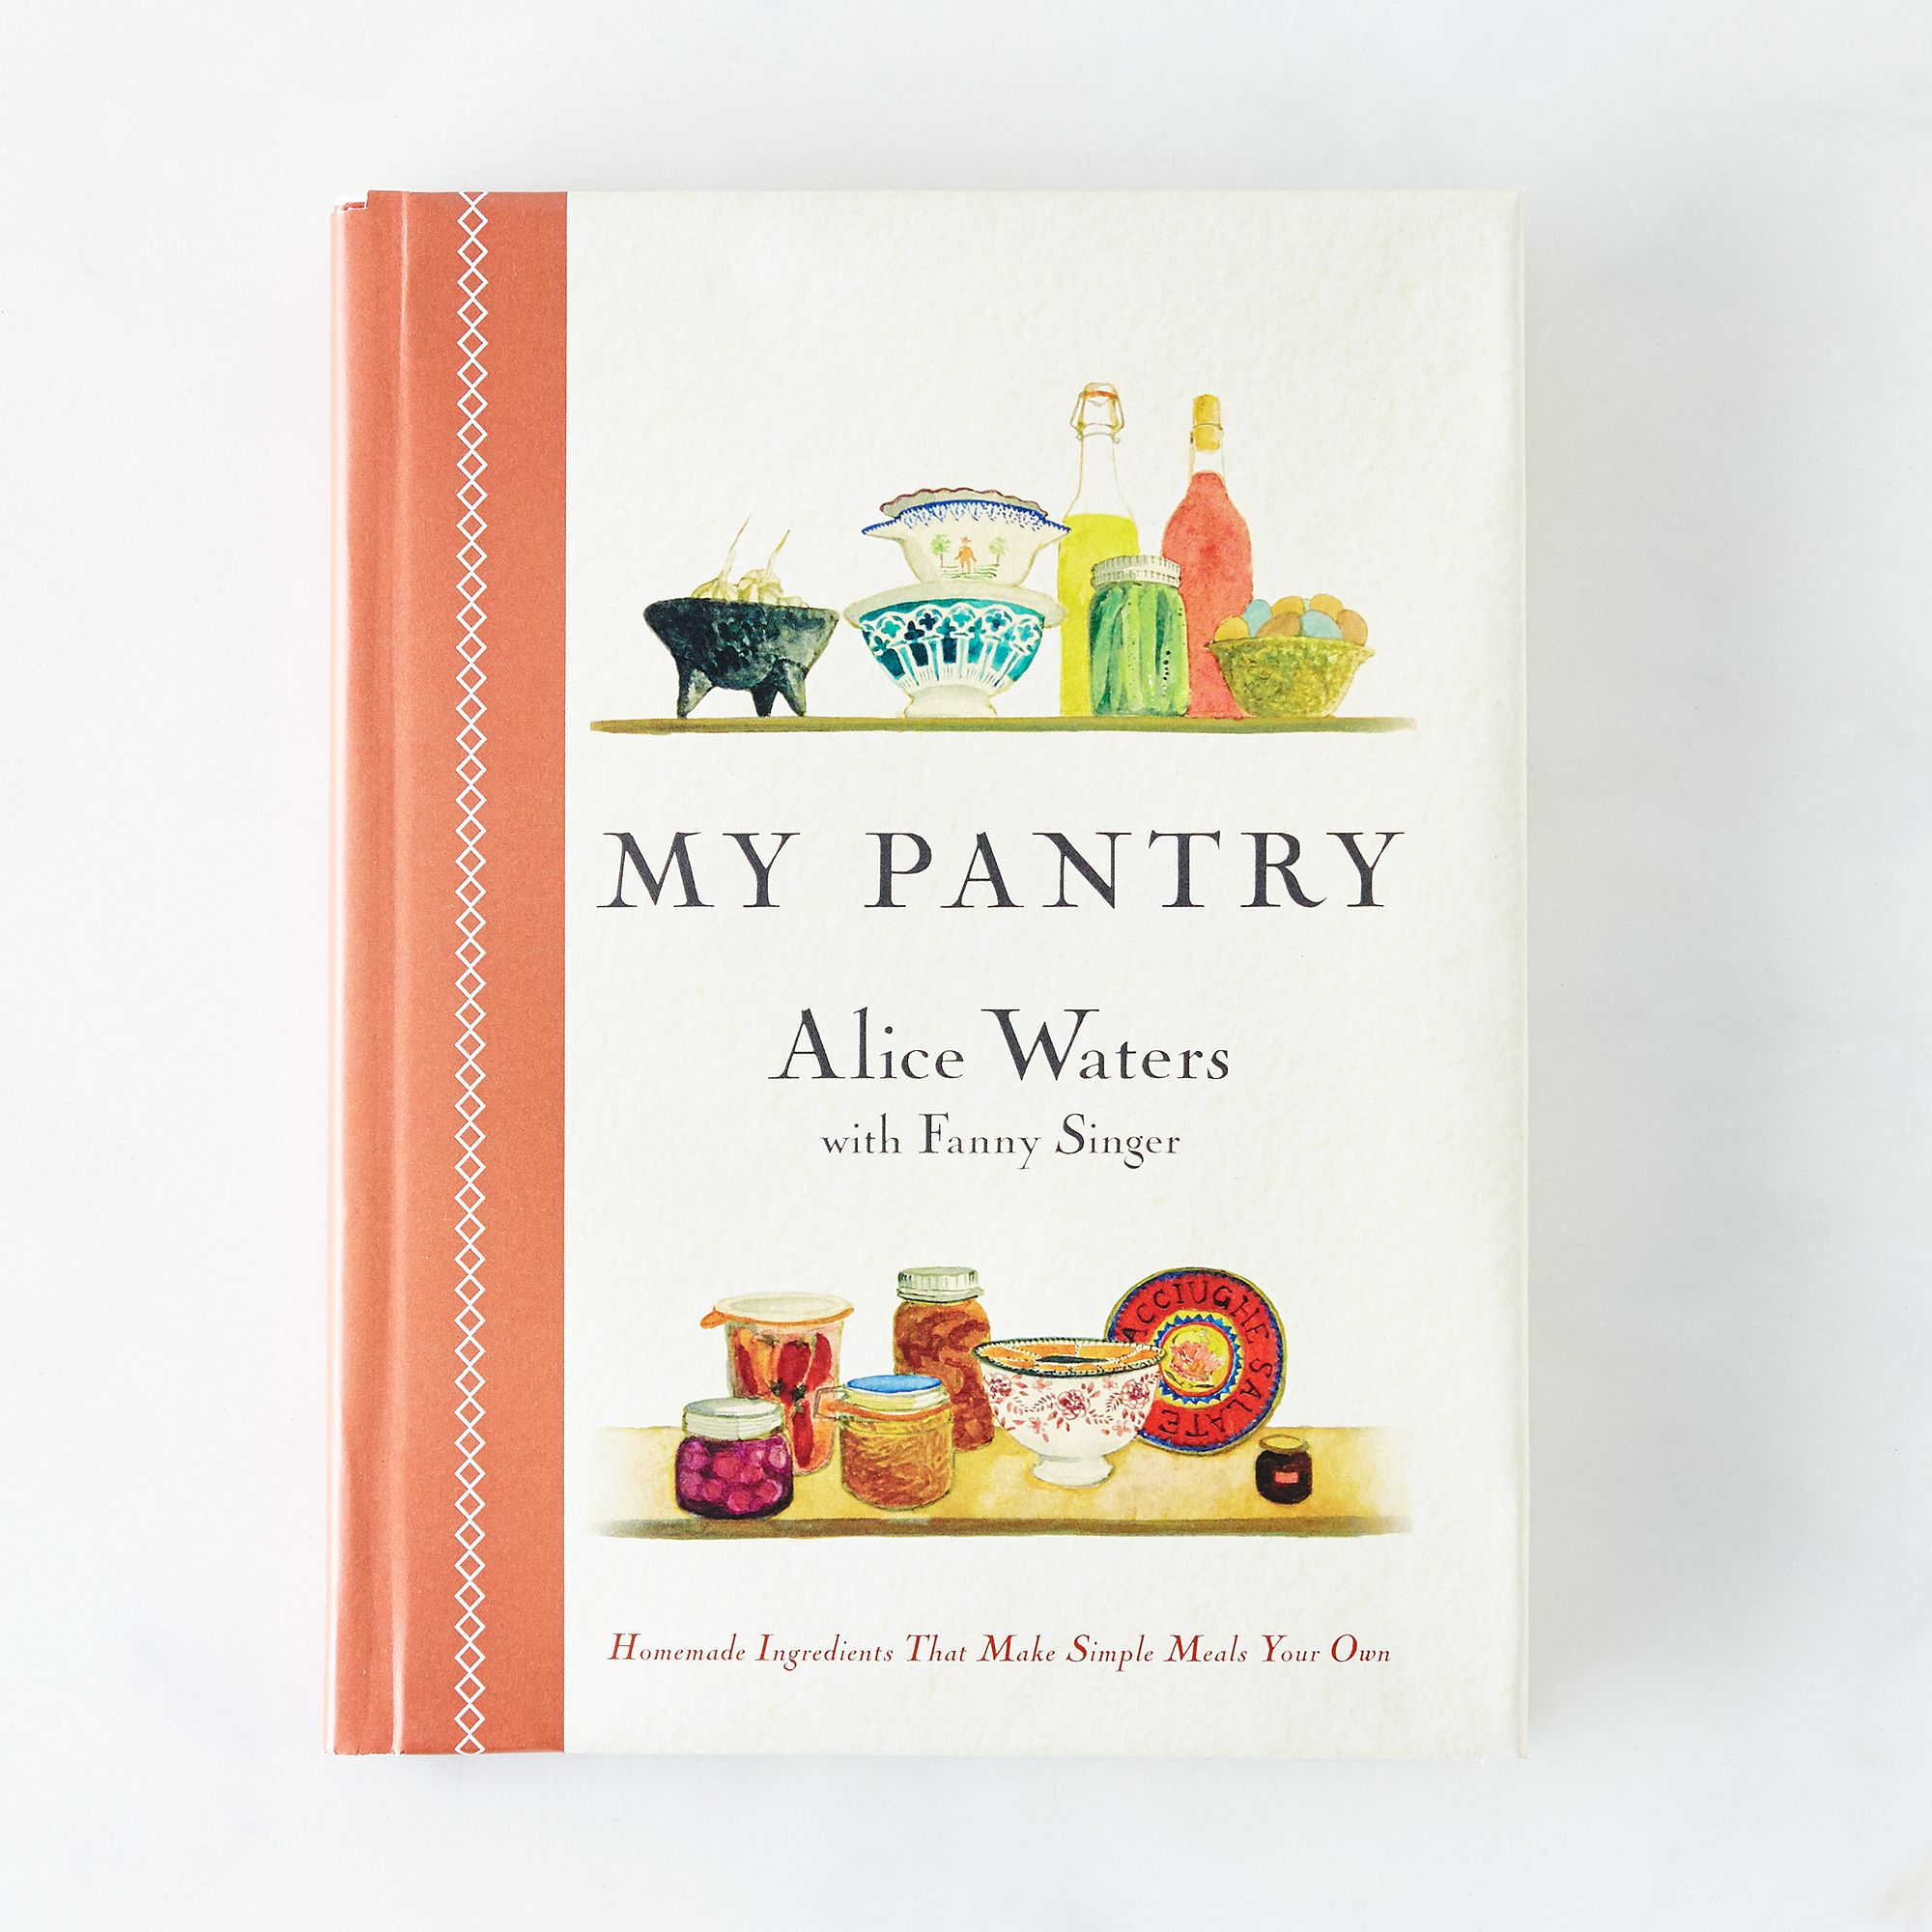 952fe8e4-7642-4d65-ab61-84278cb7405c--2015-0814_penguin-random-house_my-pantry-alice-waters-book_rocky-luten-003